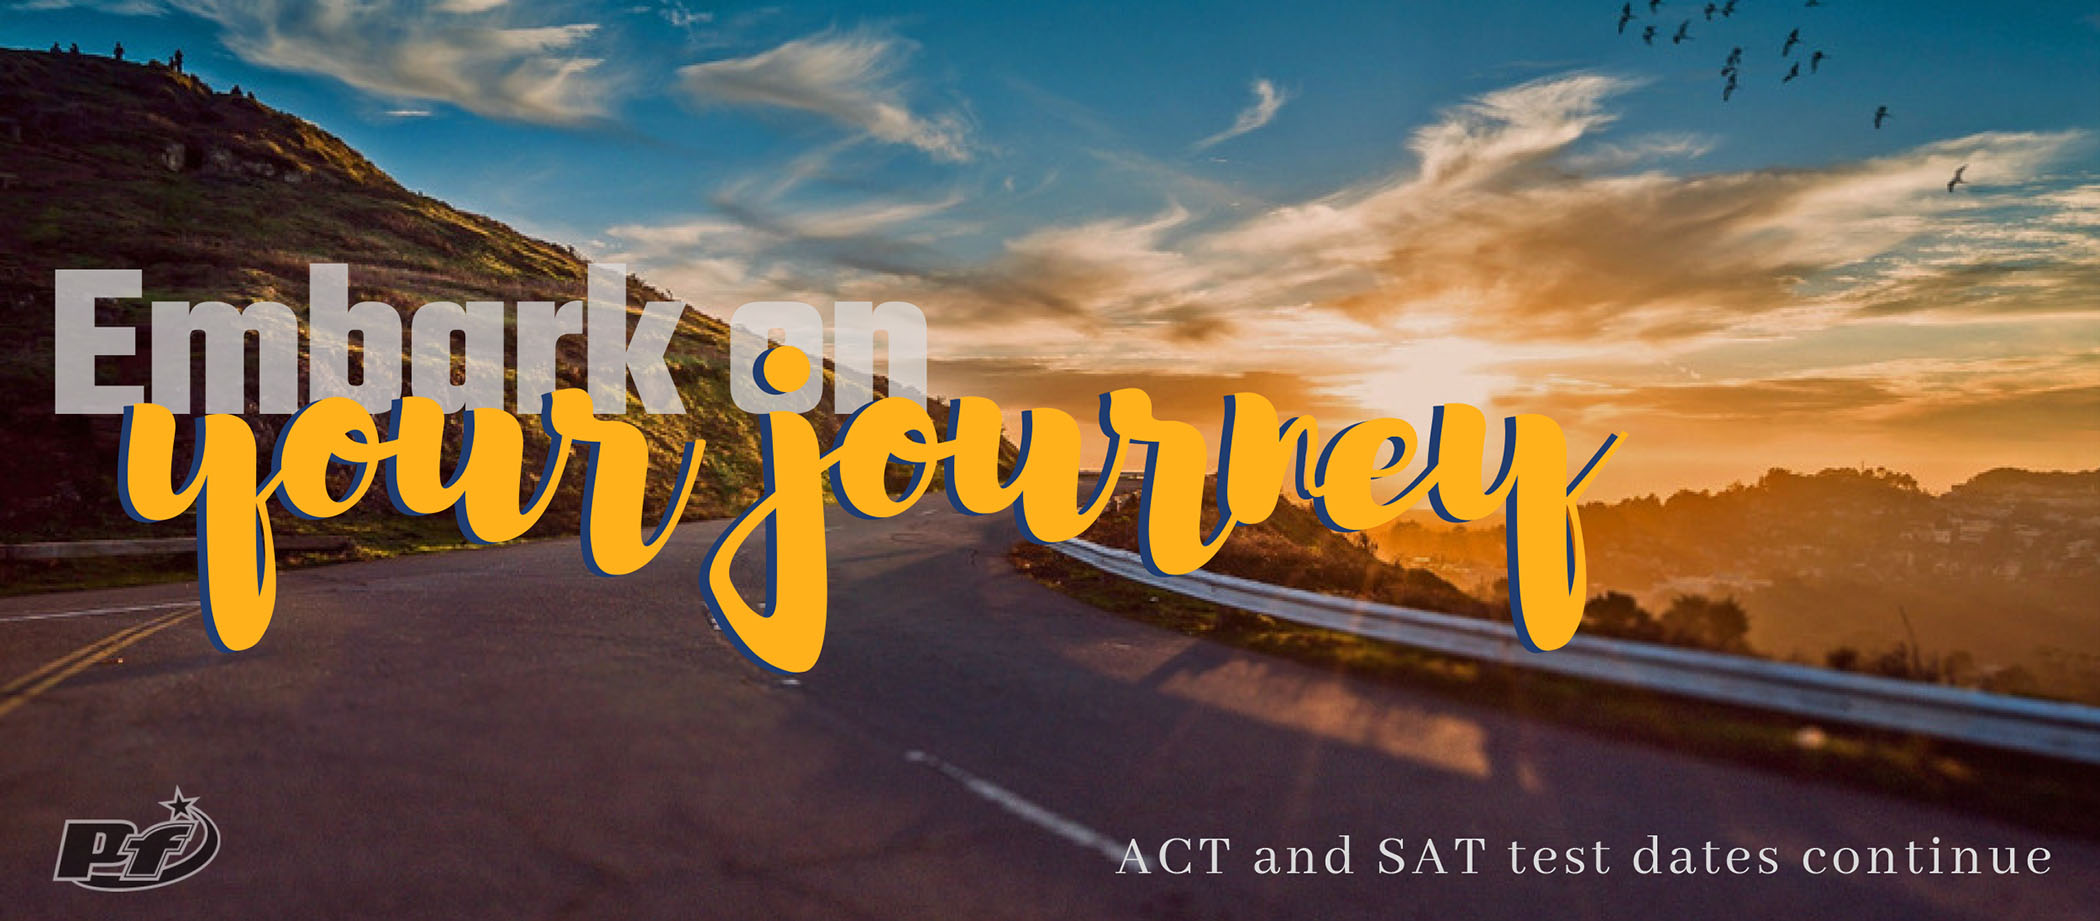 ACT & SAT test dates